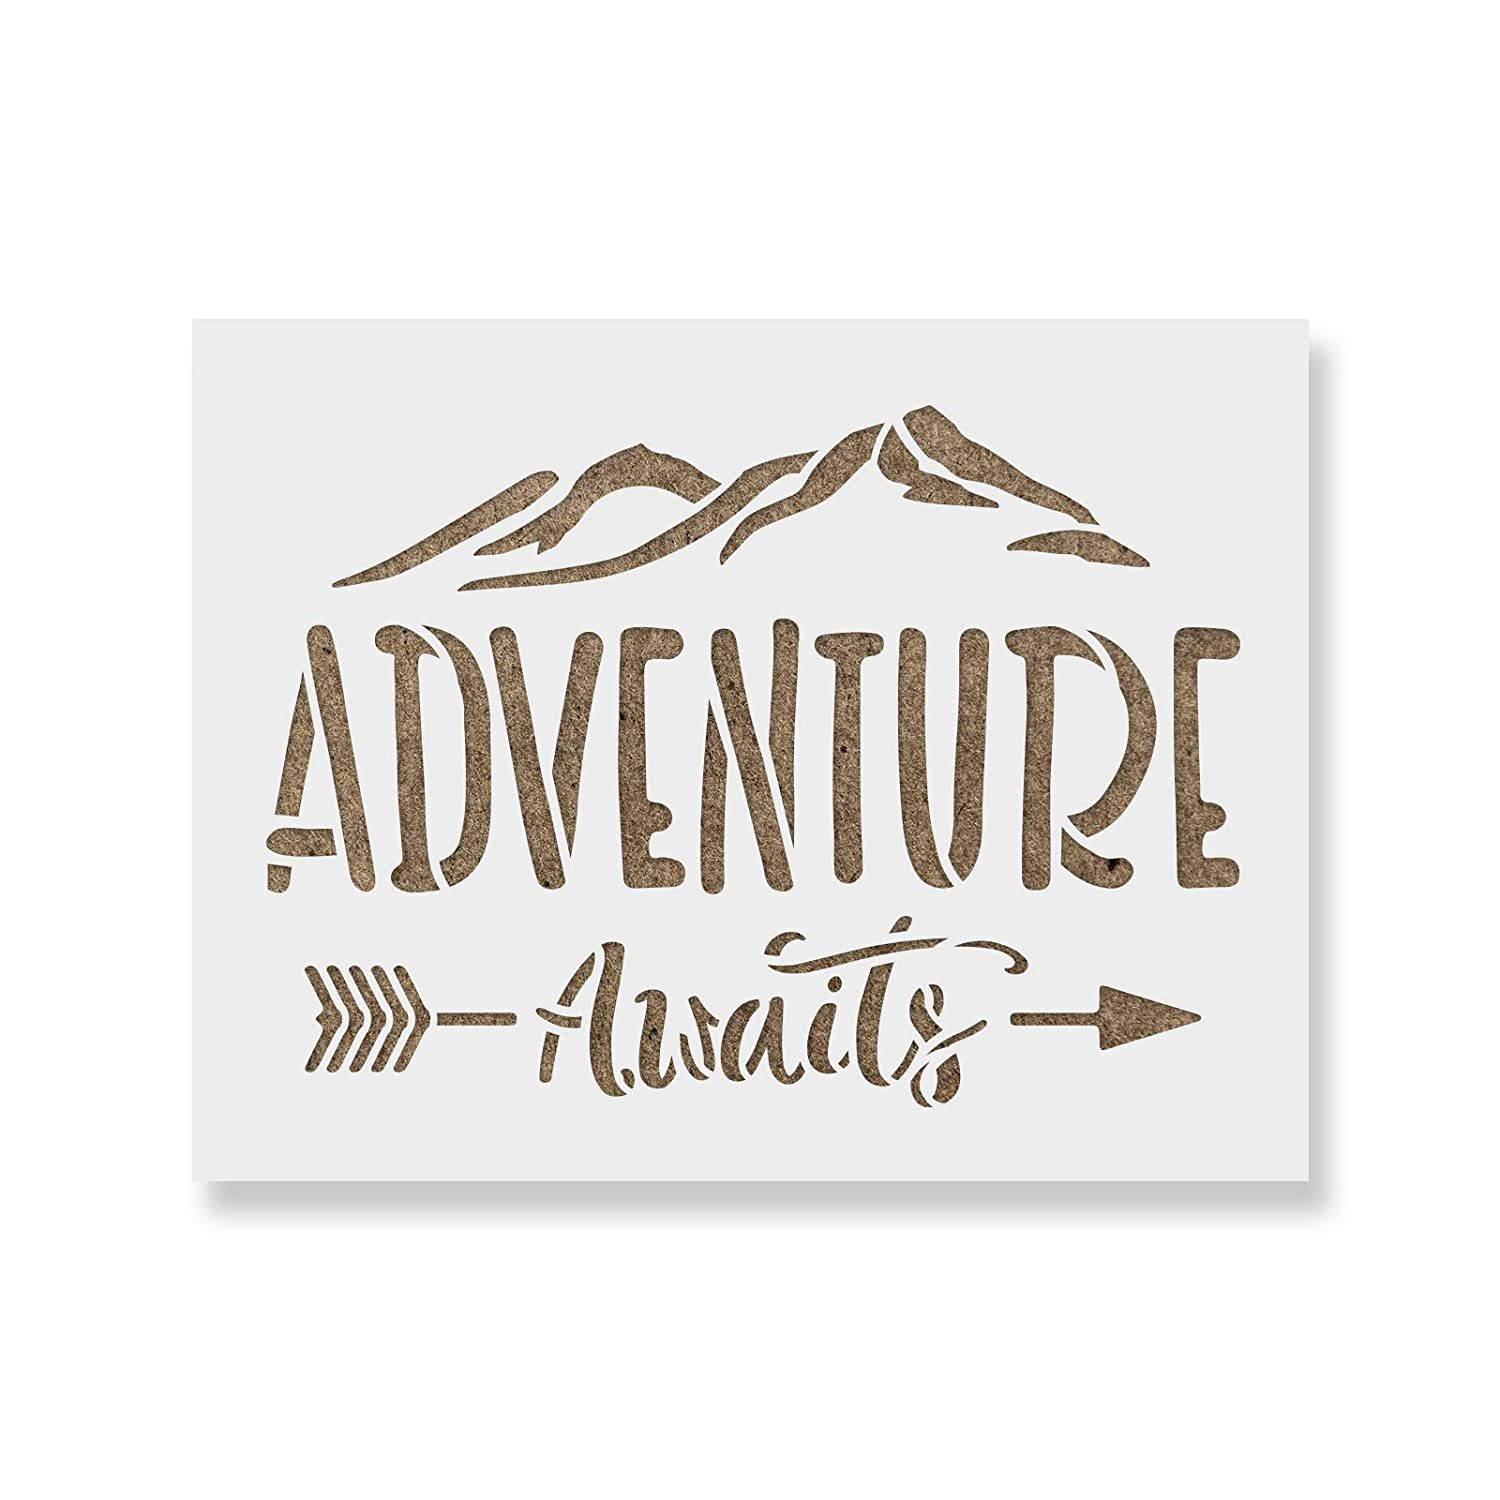 Adventure Awaits Stencil Template for Walls and Crafts - Reusable Stencils for Painting in Small & Large Sizes Stencil Revolution